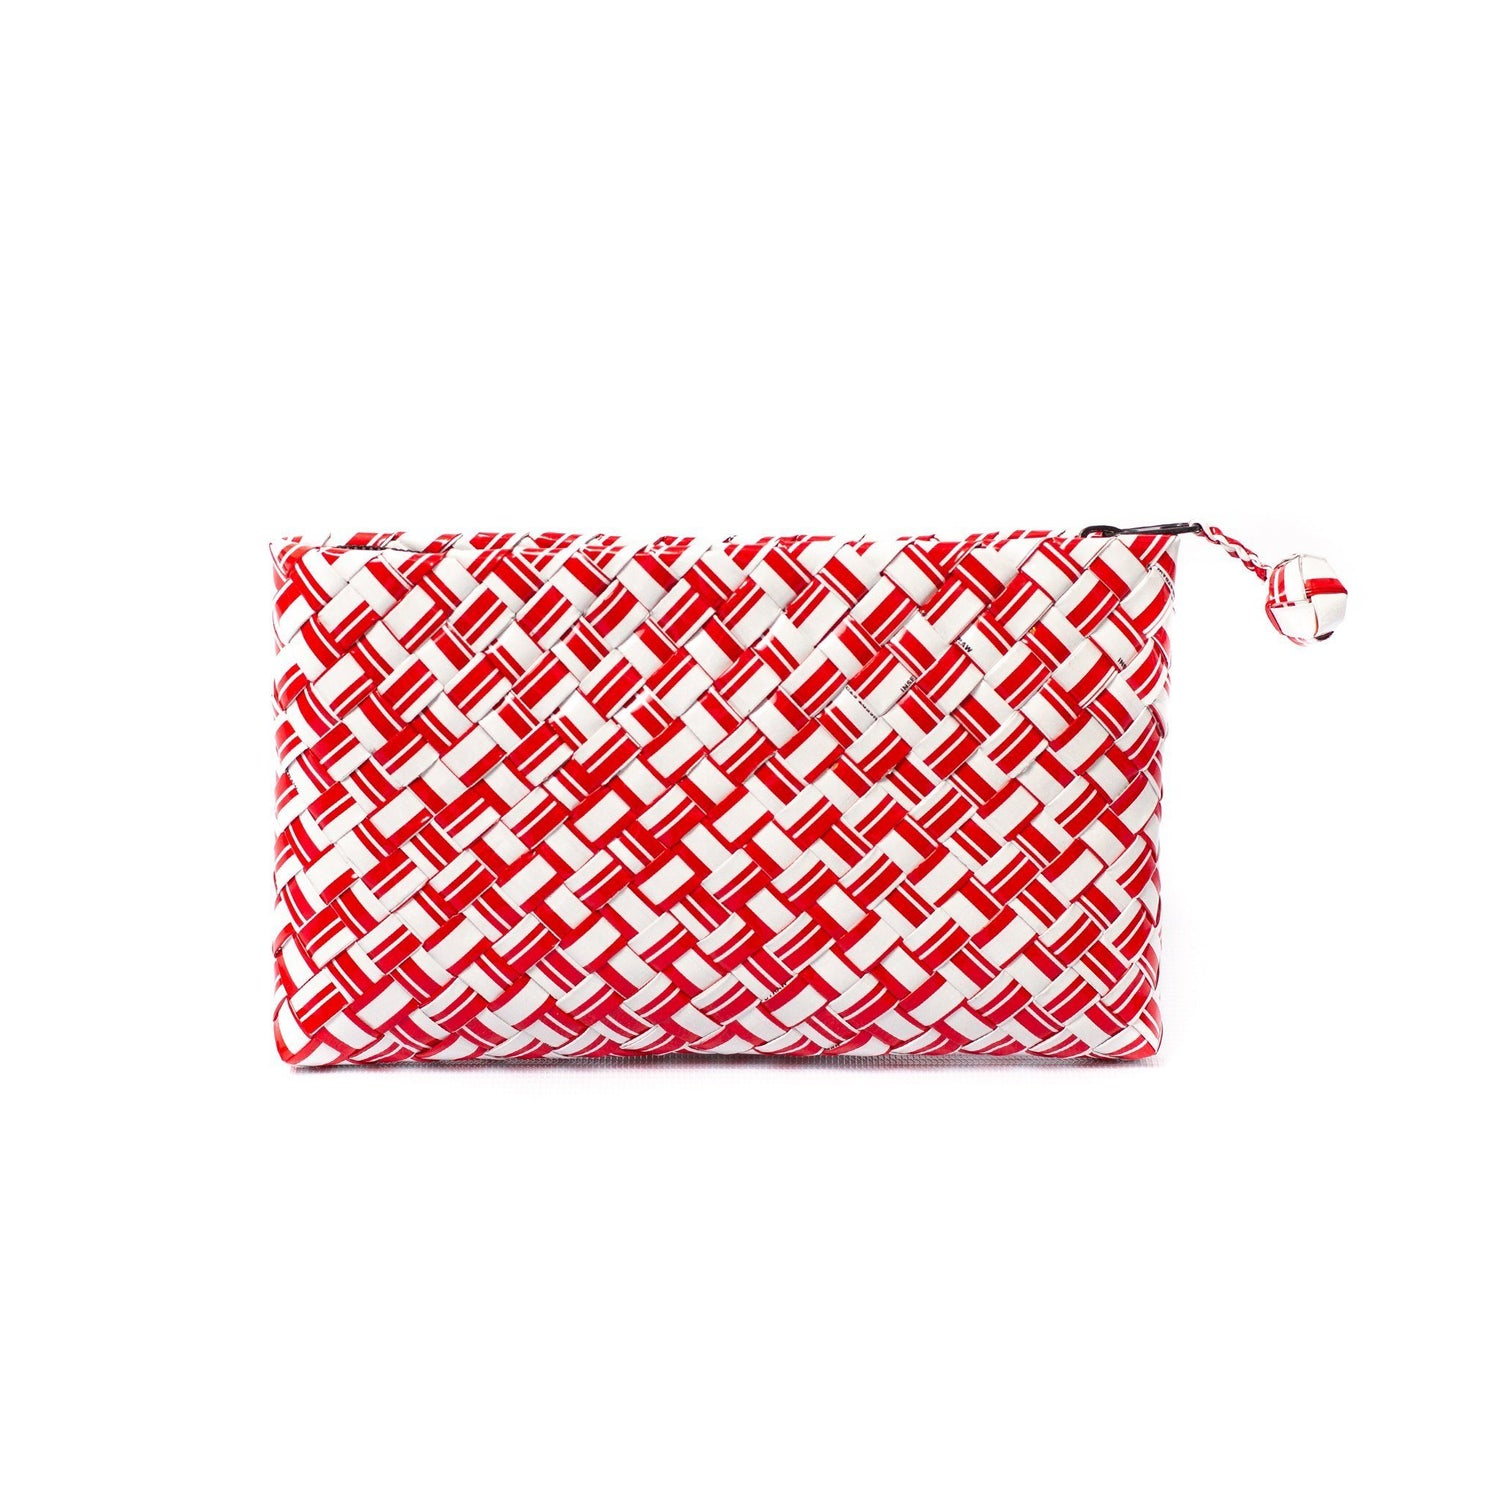 Mother Erth Limited Edition - Red Woven Clutch Bags Mother Erth